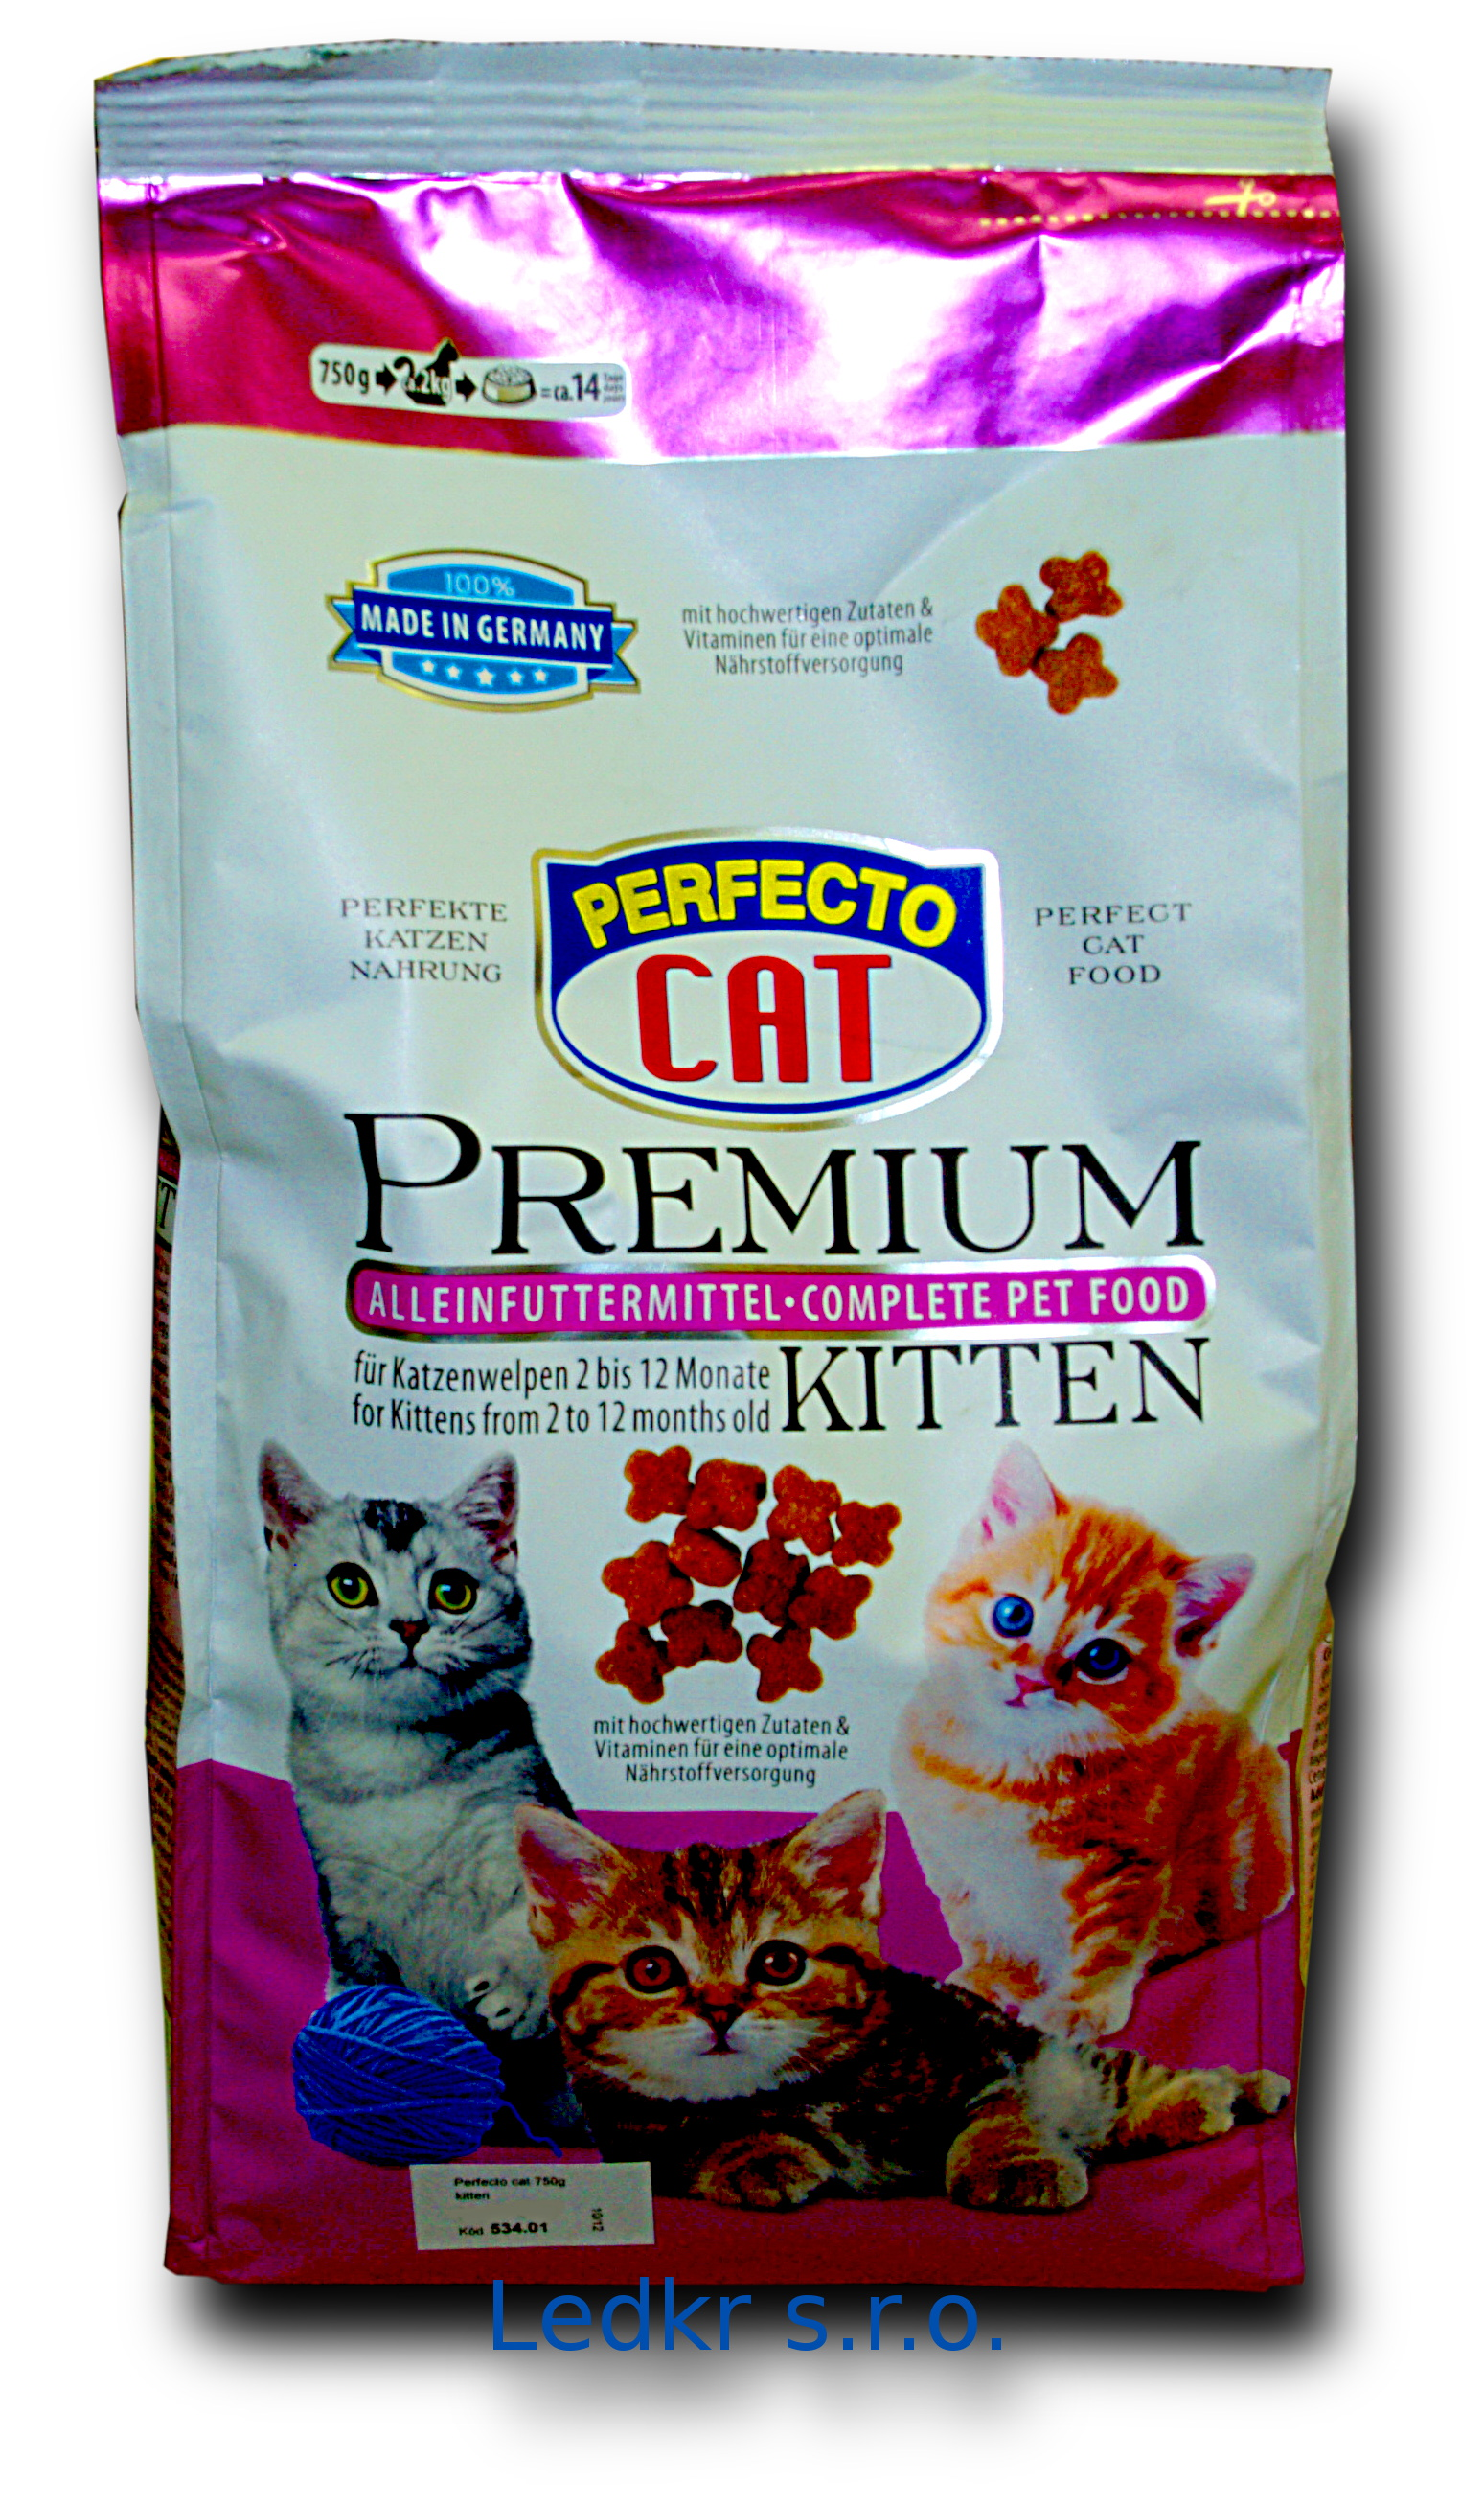 Perfecto cat kitten 750g  /6/